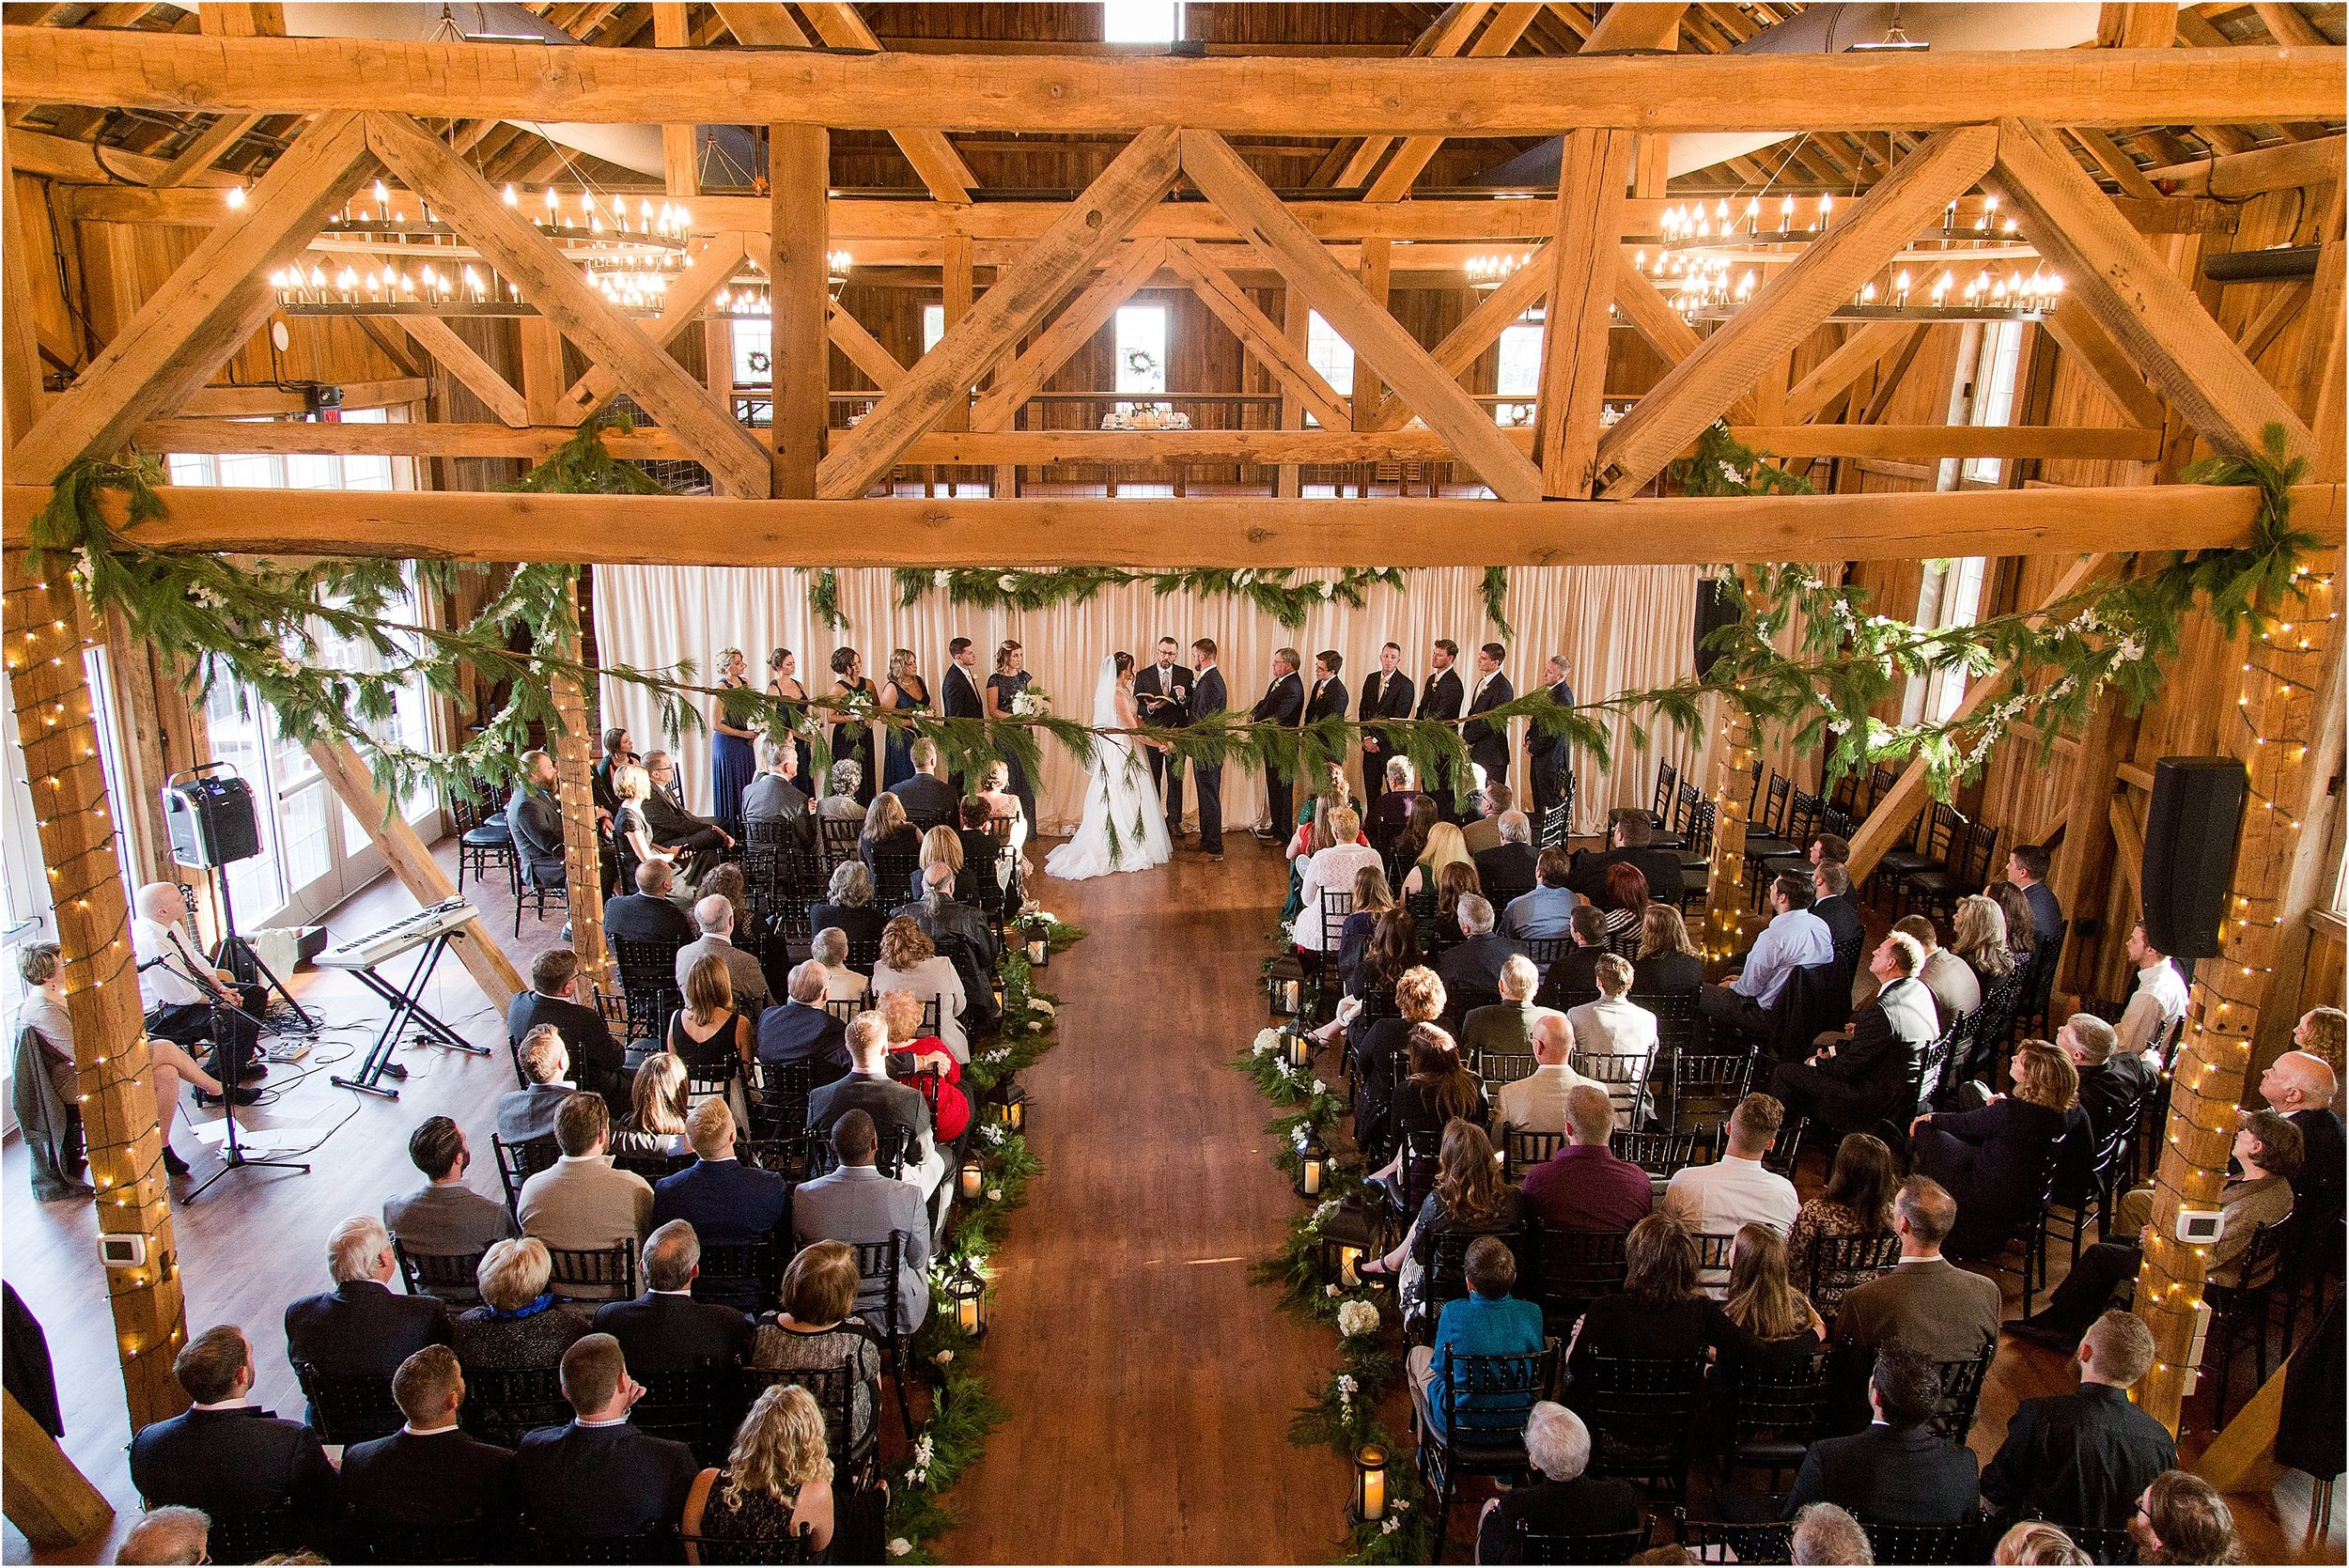 While I was getting close shots of Dan & Kendra, my second, Alyssa Eckhart, went into the balcony to get this awesome wide shot of their ceremony at Wyndridge!